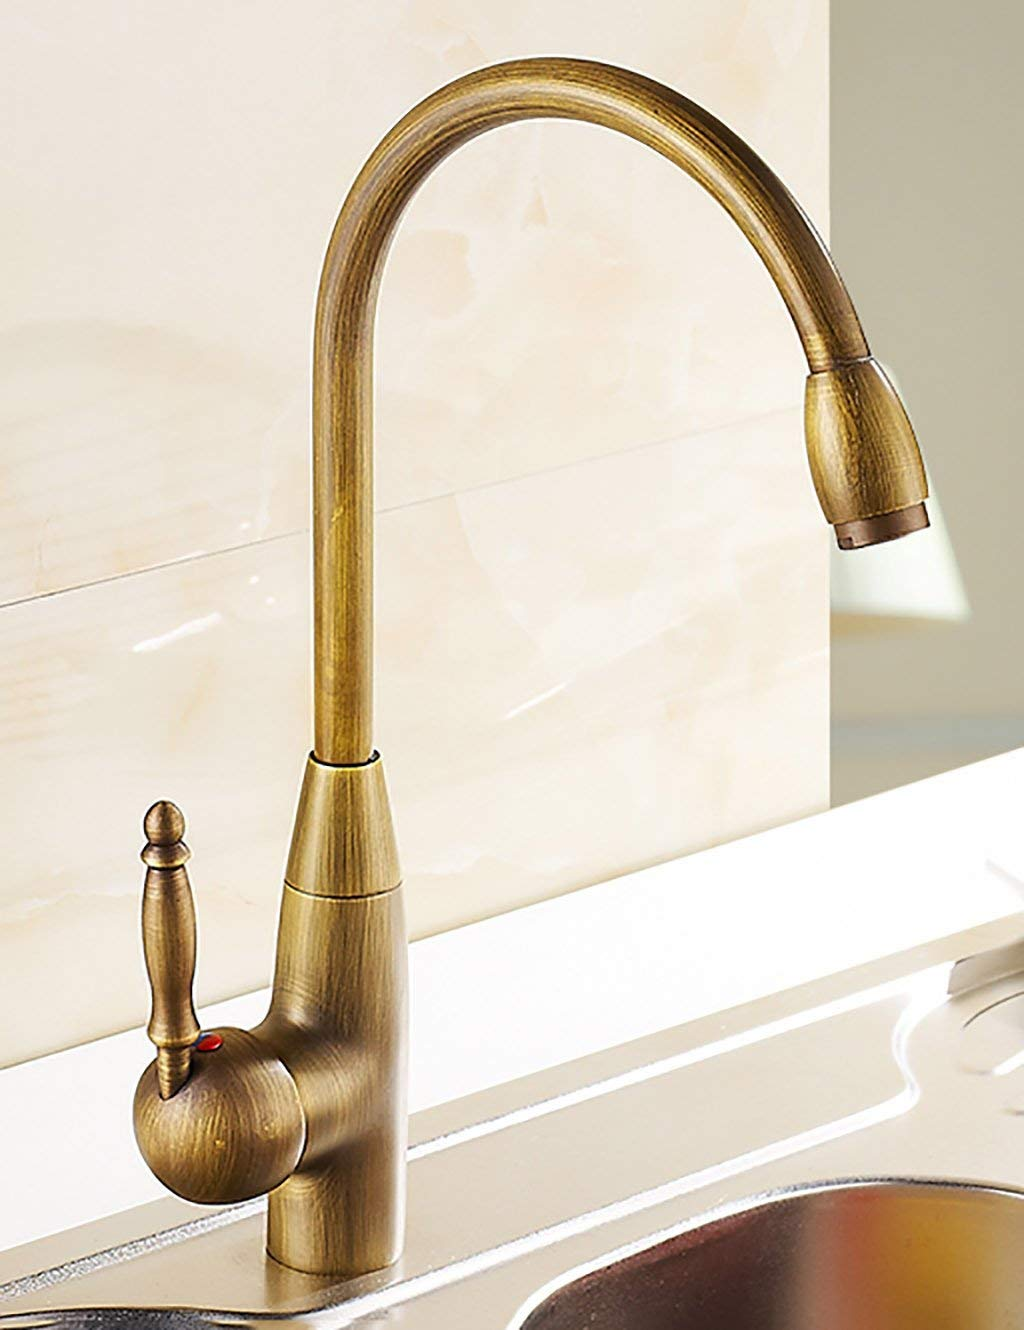 DYR Faucet European Style Household Kitchen Faucet Copper greenical Hei? And Cold Turning Increases Single Hole Single Head